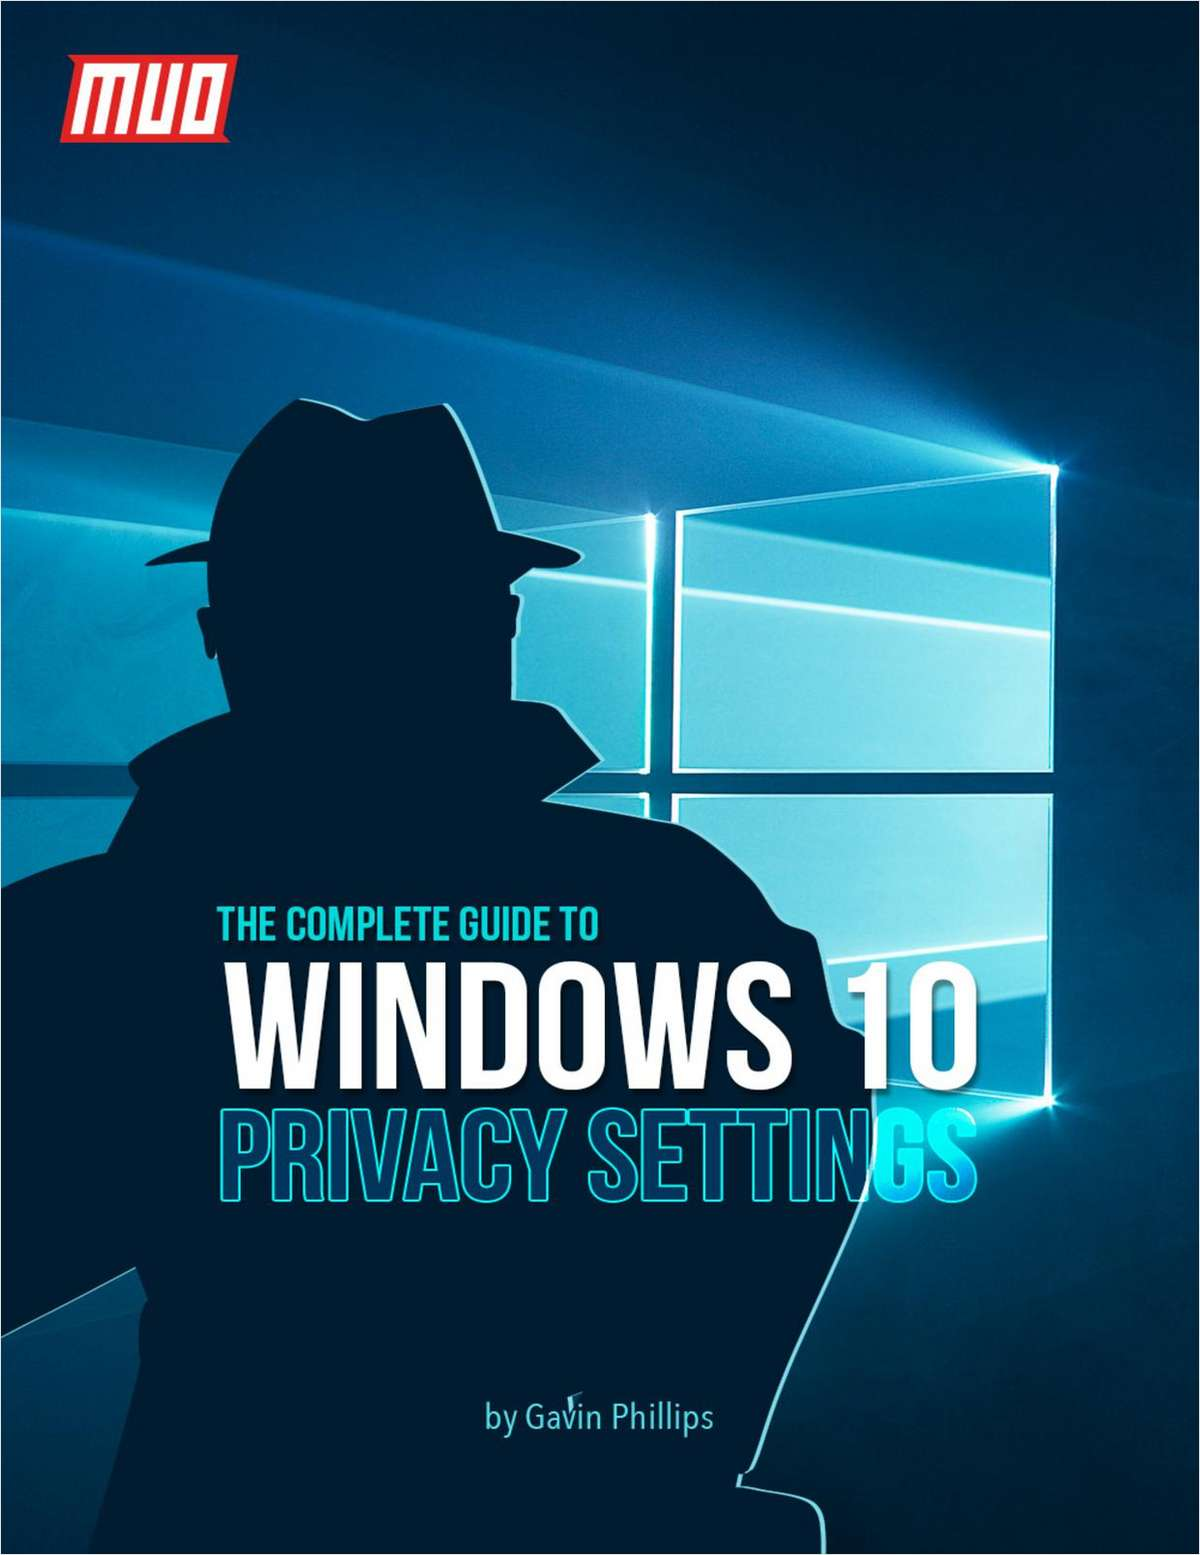 The Complete Guide to Windows 10 Privacy Settings